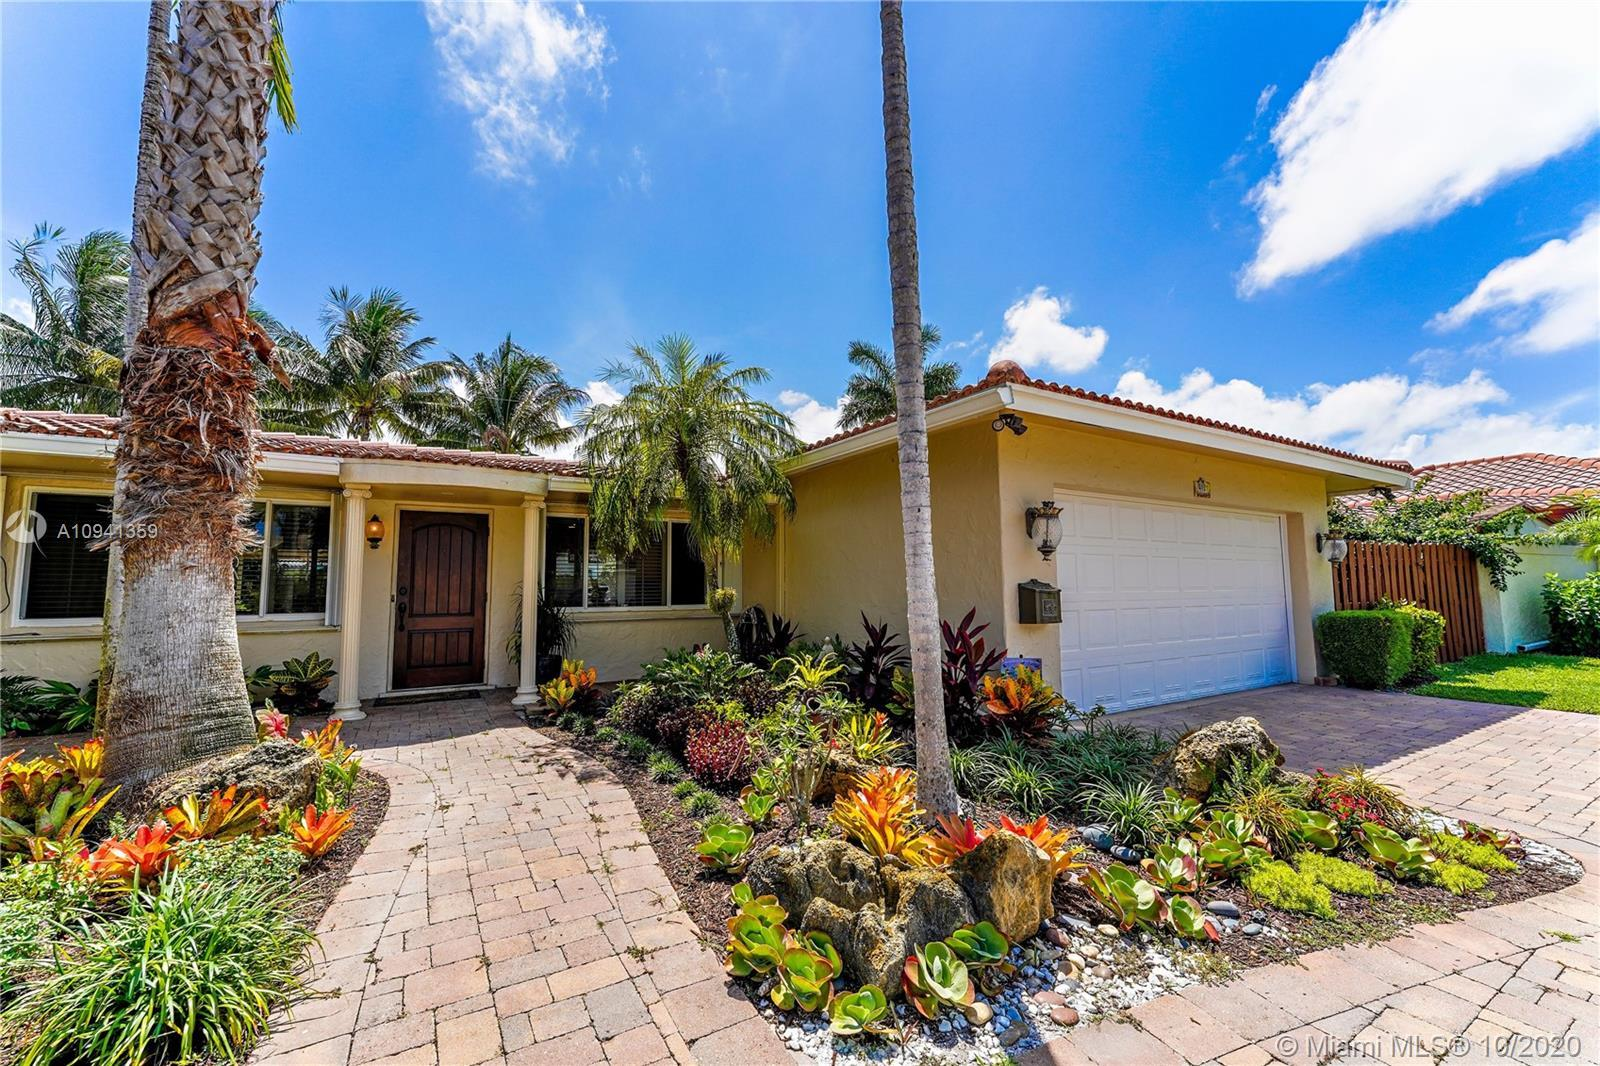 BEAUTIFUL AND UPGRADED 3BR/2BA HOME WITH A CIRCULAR DRIVEWAY, SALT WATER POOL AND 2 CAR GARAGE ON A